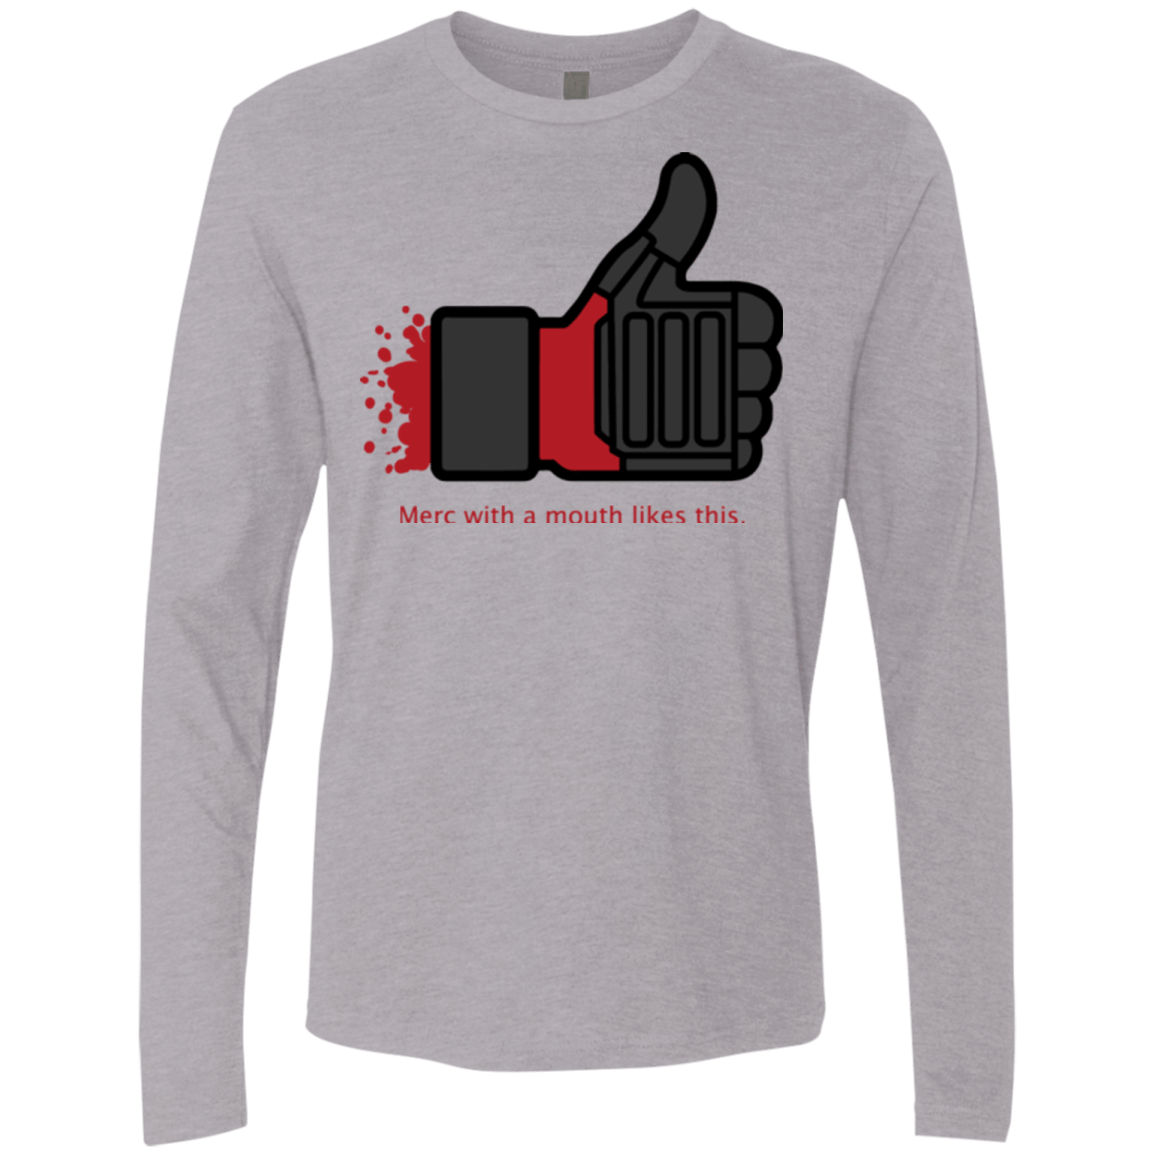 T-Shirts Heather Grey / Small Like Merc Men's Premium Long Sleeve